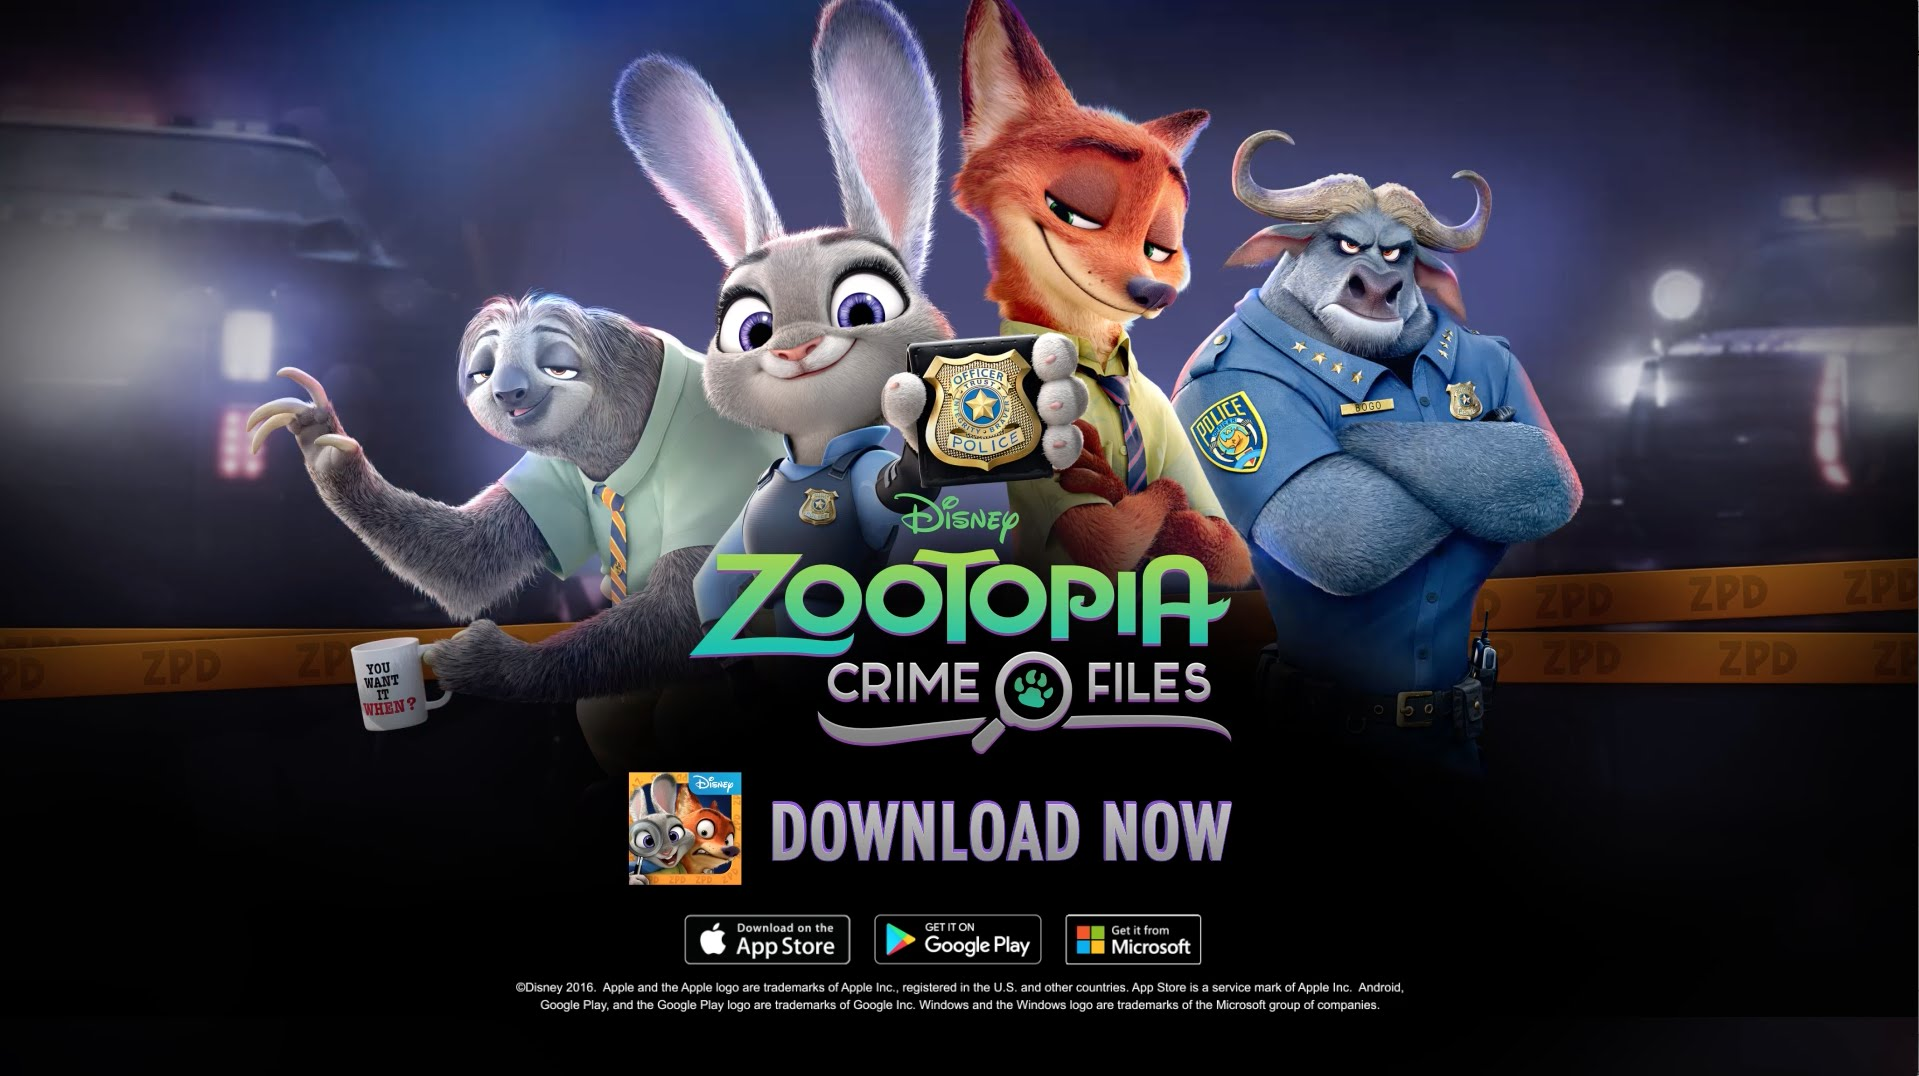 Zootopia Crime Files